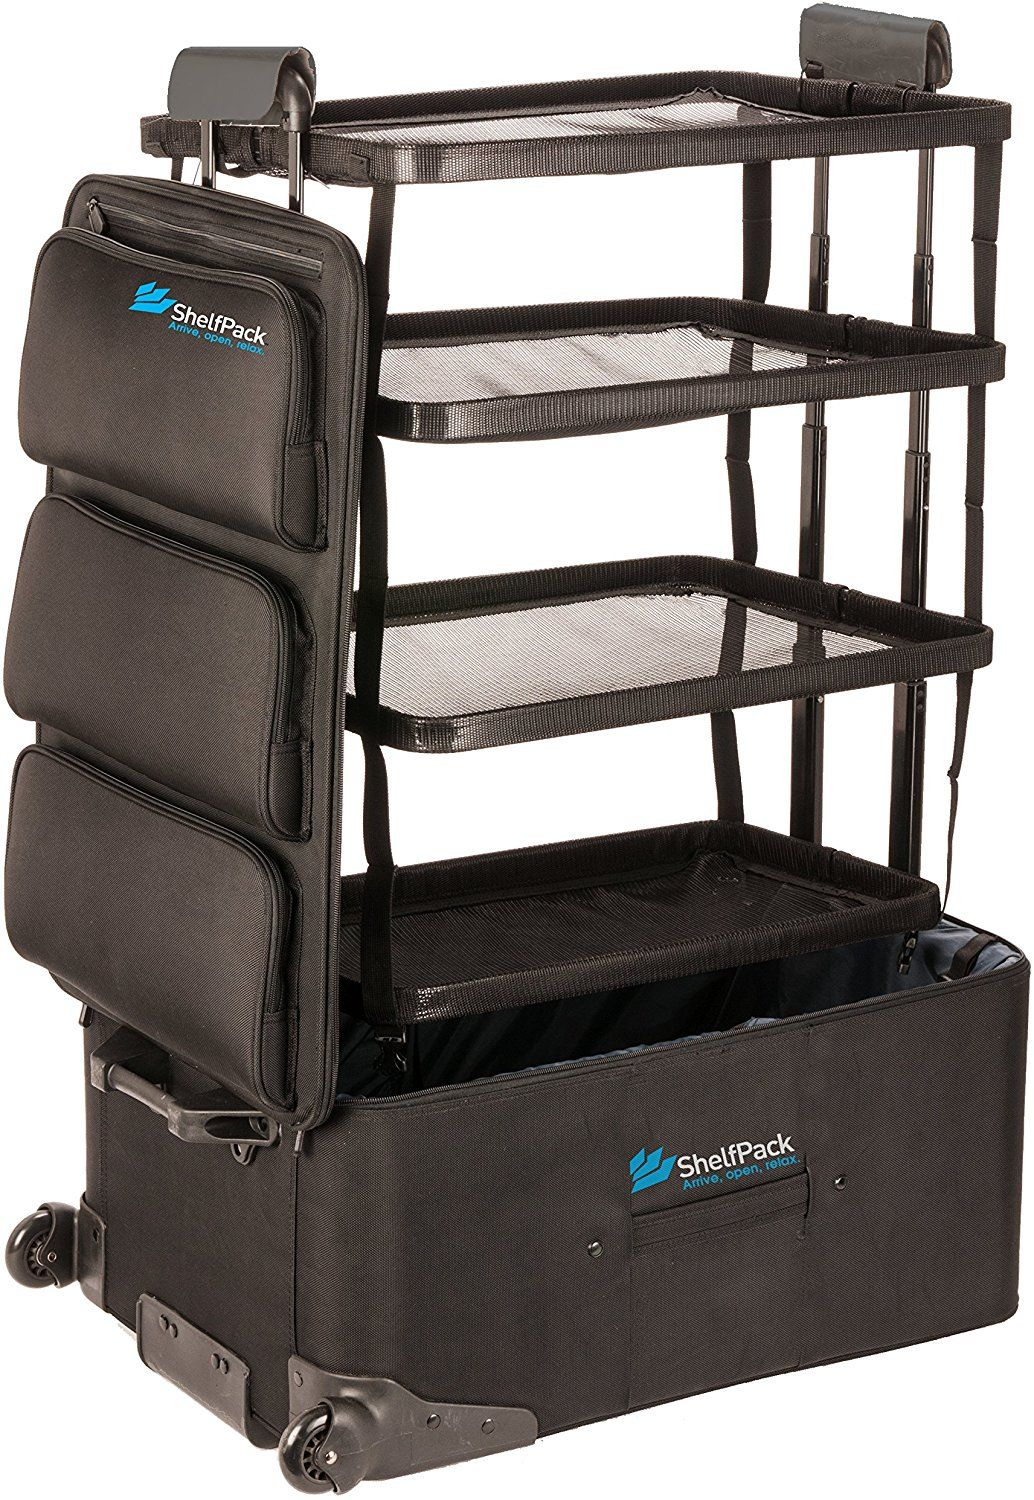 Amazon Com Shelfpack Revolutionary Suitcase With Built In Shelves Suitcases Malles Vintage Conseils Preparation Bagages Valise